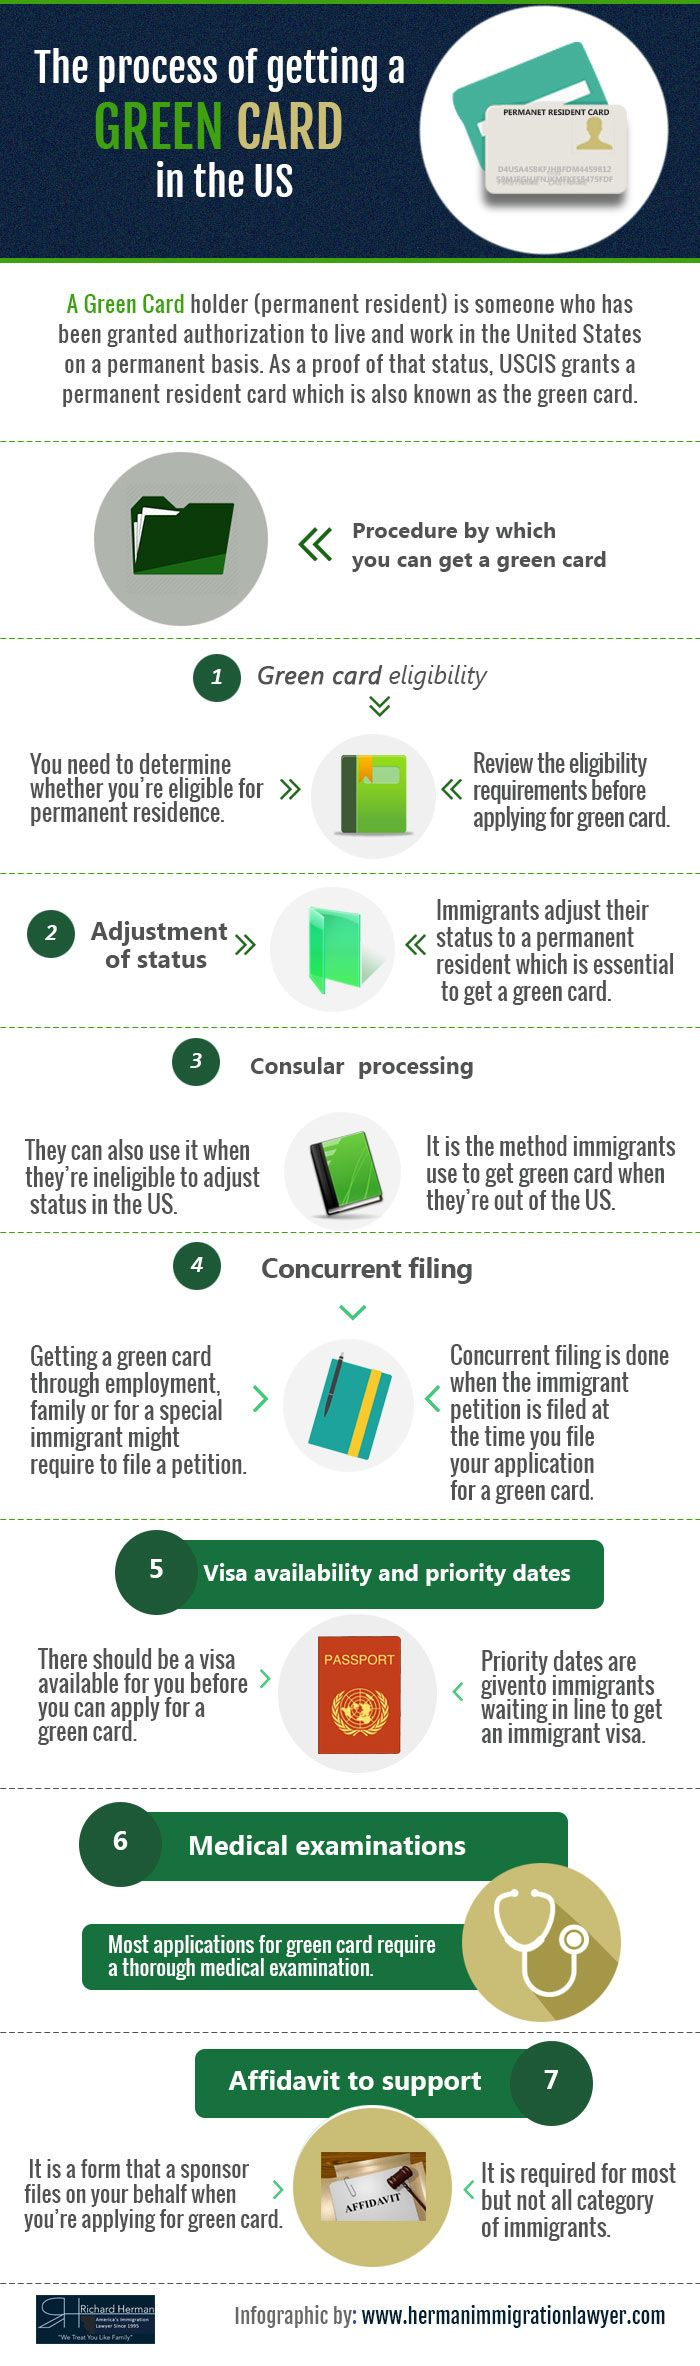 Green card is a permanent resident card which grants an individual the authorization to live and work in the US permanently. The steps to obtain green card include meeting the eligibility criteria, concurrent filing, visa availability, priority dates and a thorough medical check-up. Check out the following infographic to know about these steps in detail. http://www.hermanimmigrationlawyer.com/the-process-of-getting-a-green-card-in-the-us/